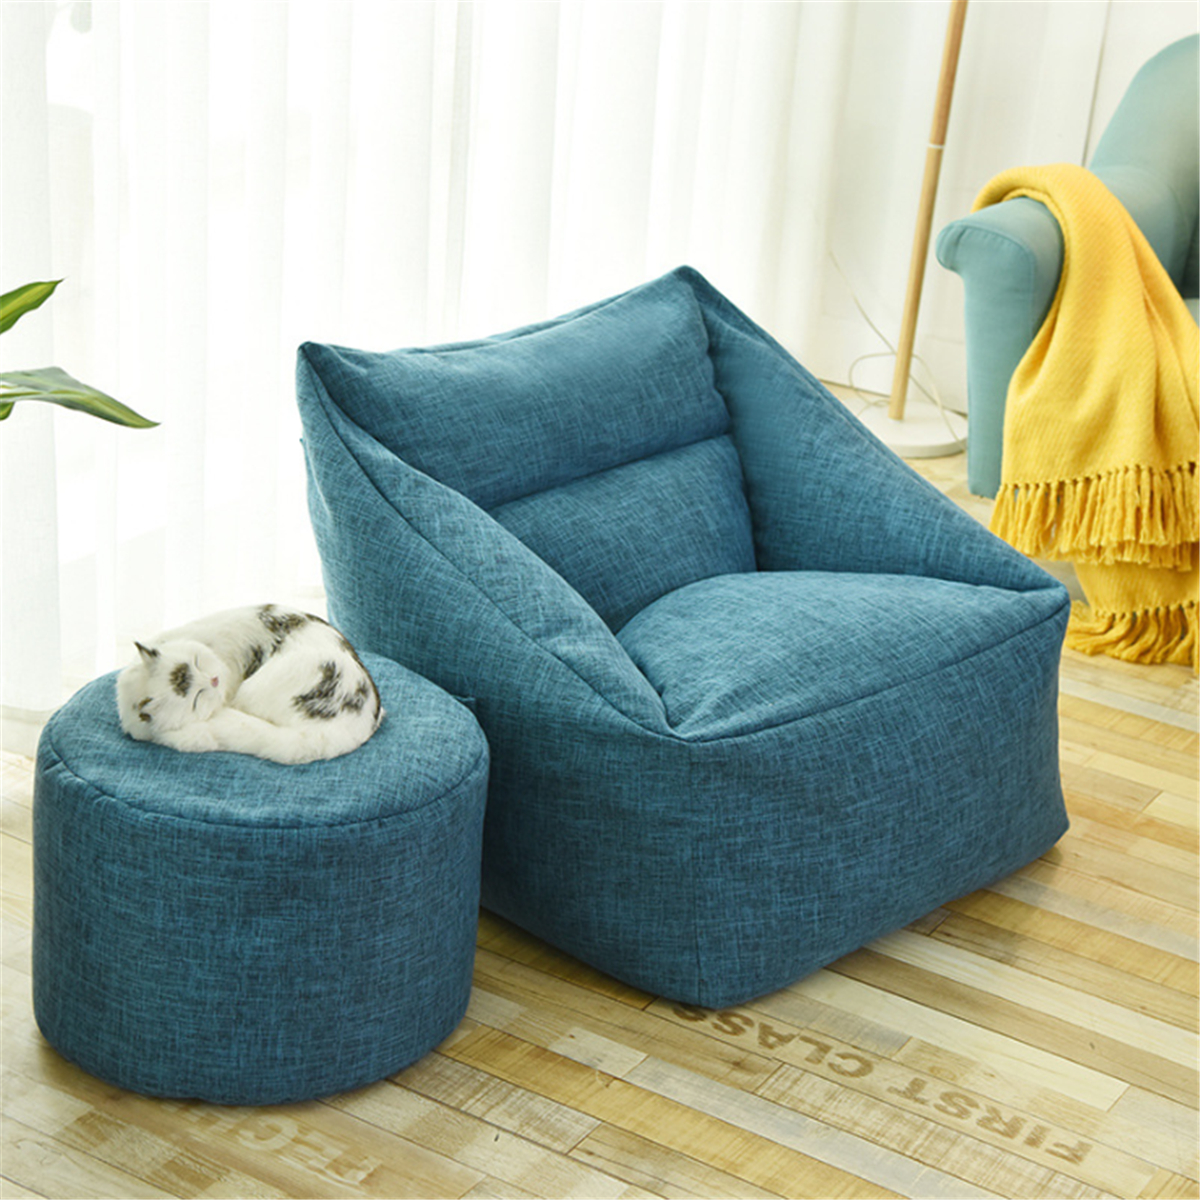 Large Bean Bag Chair Covers Lazy Sofa Indoor Seat Armchair ...